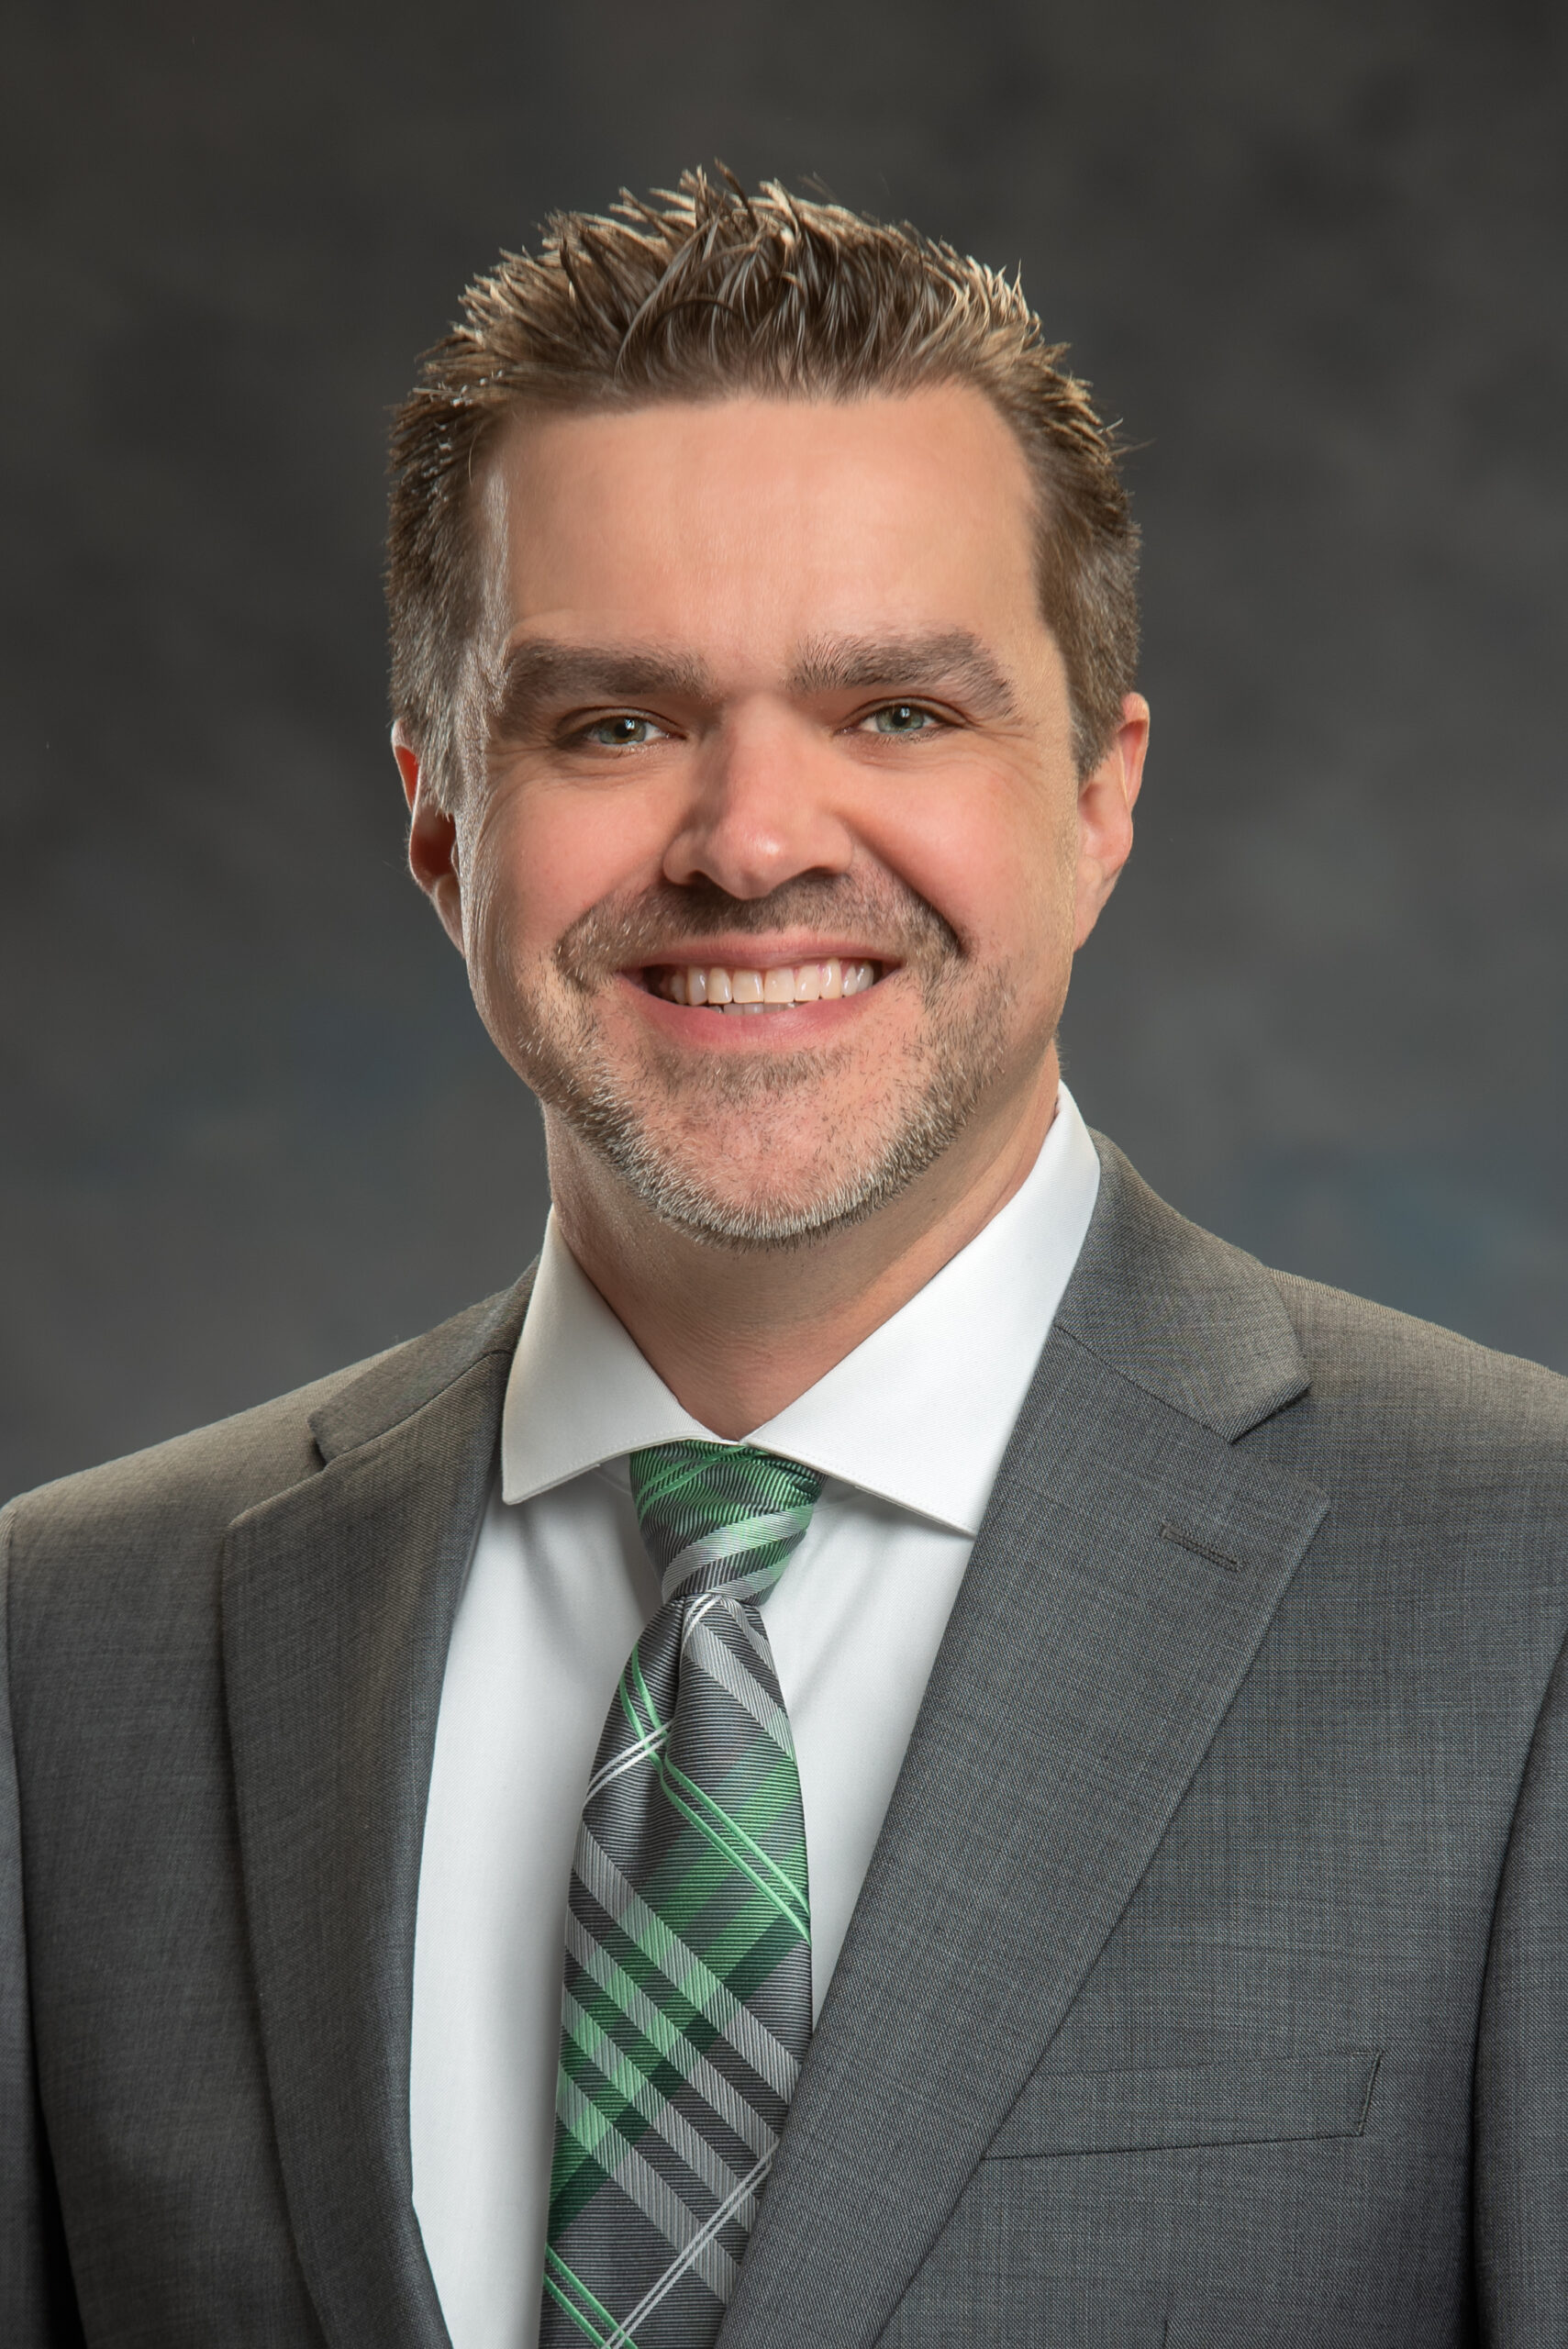 L. James Schut, PhD – Director of Clinical Research